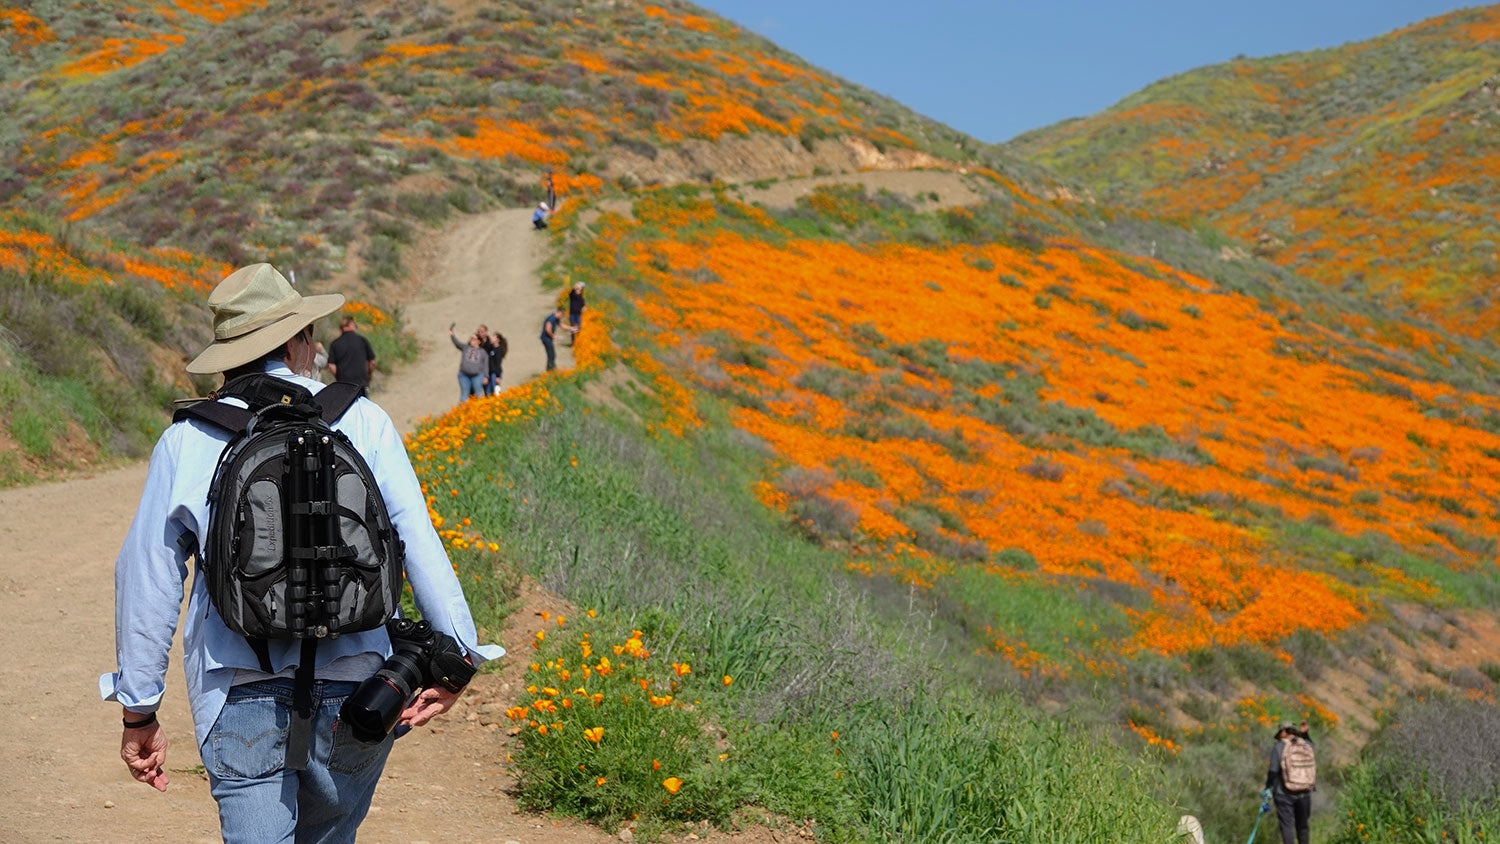 a person walks on a dirt trail toward a crowd of people taking photos of a field of orange wildflowers